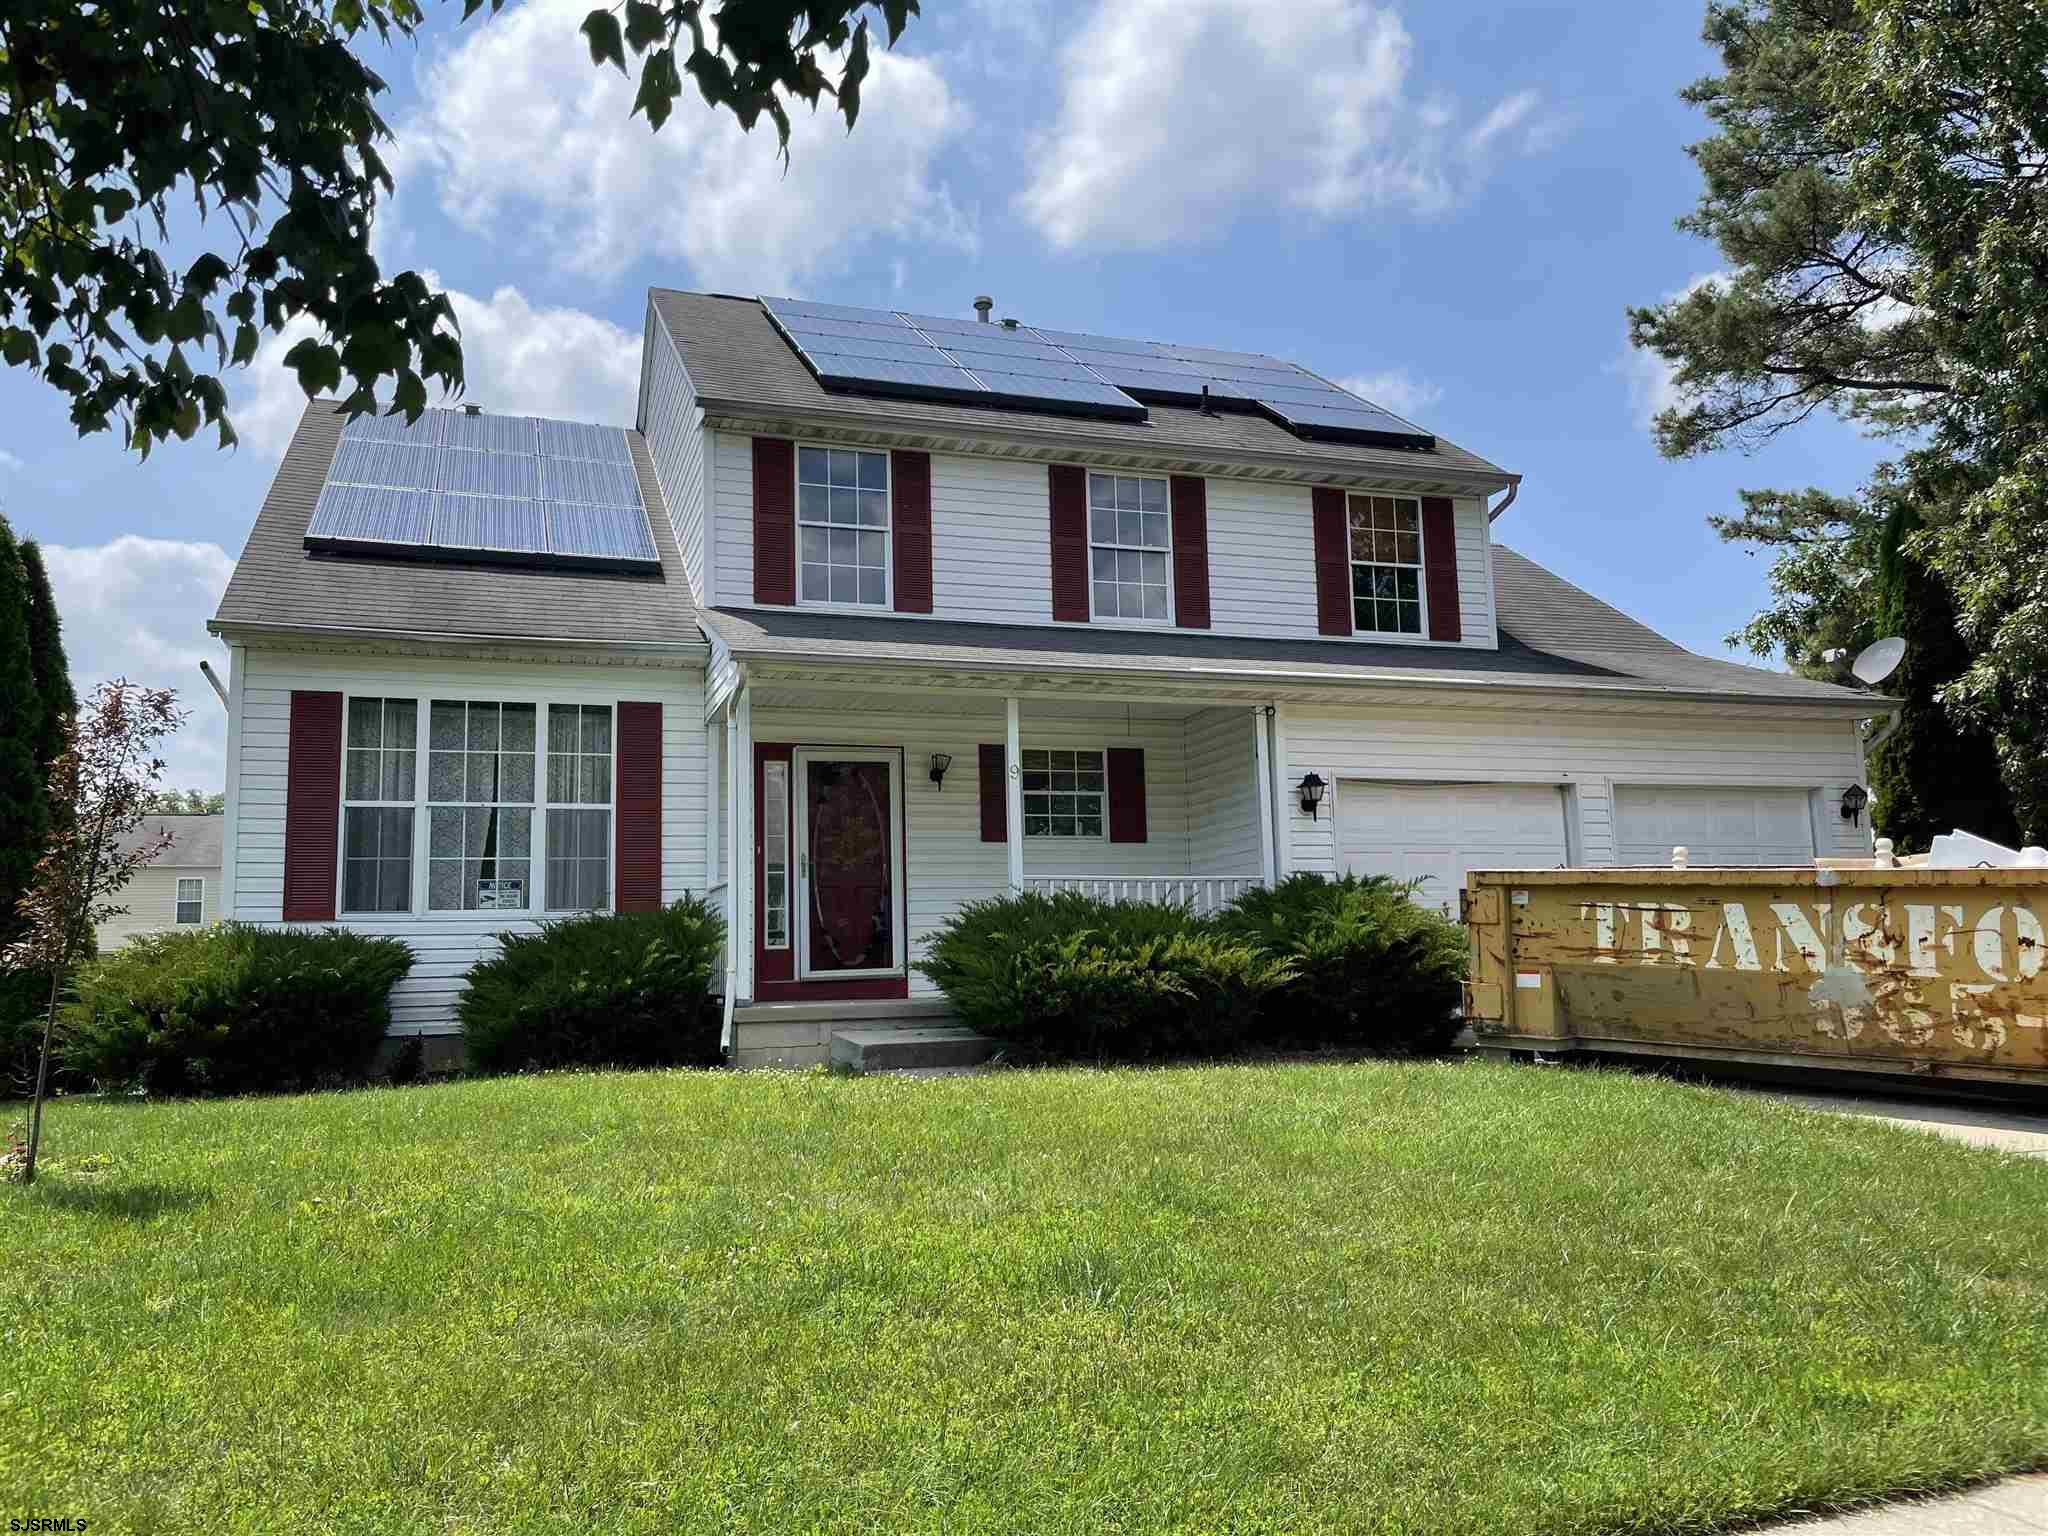 Nice, two story home in Egg Harbor Township needing some TLC to make it yours! This 3 bedroom 2 1/2